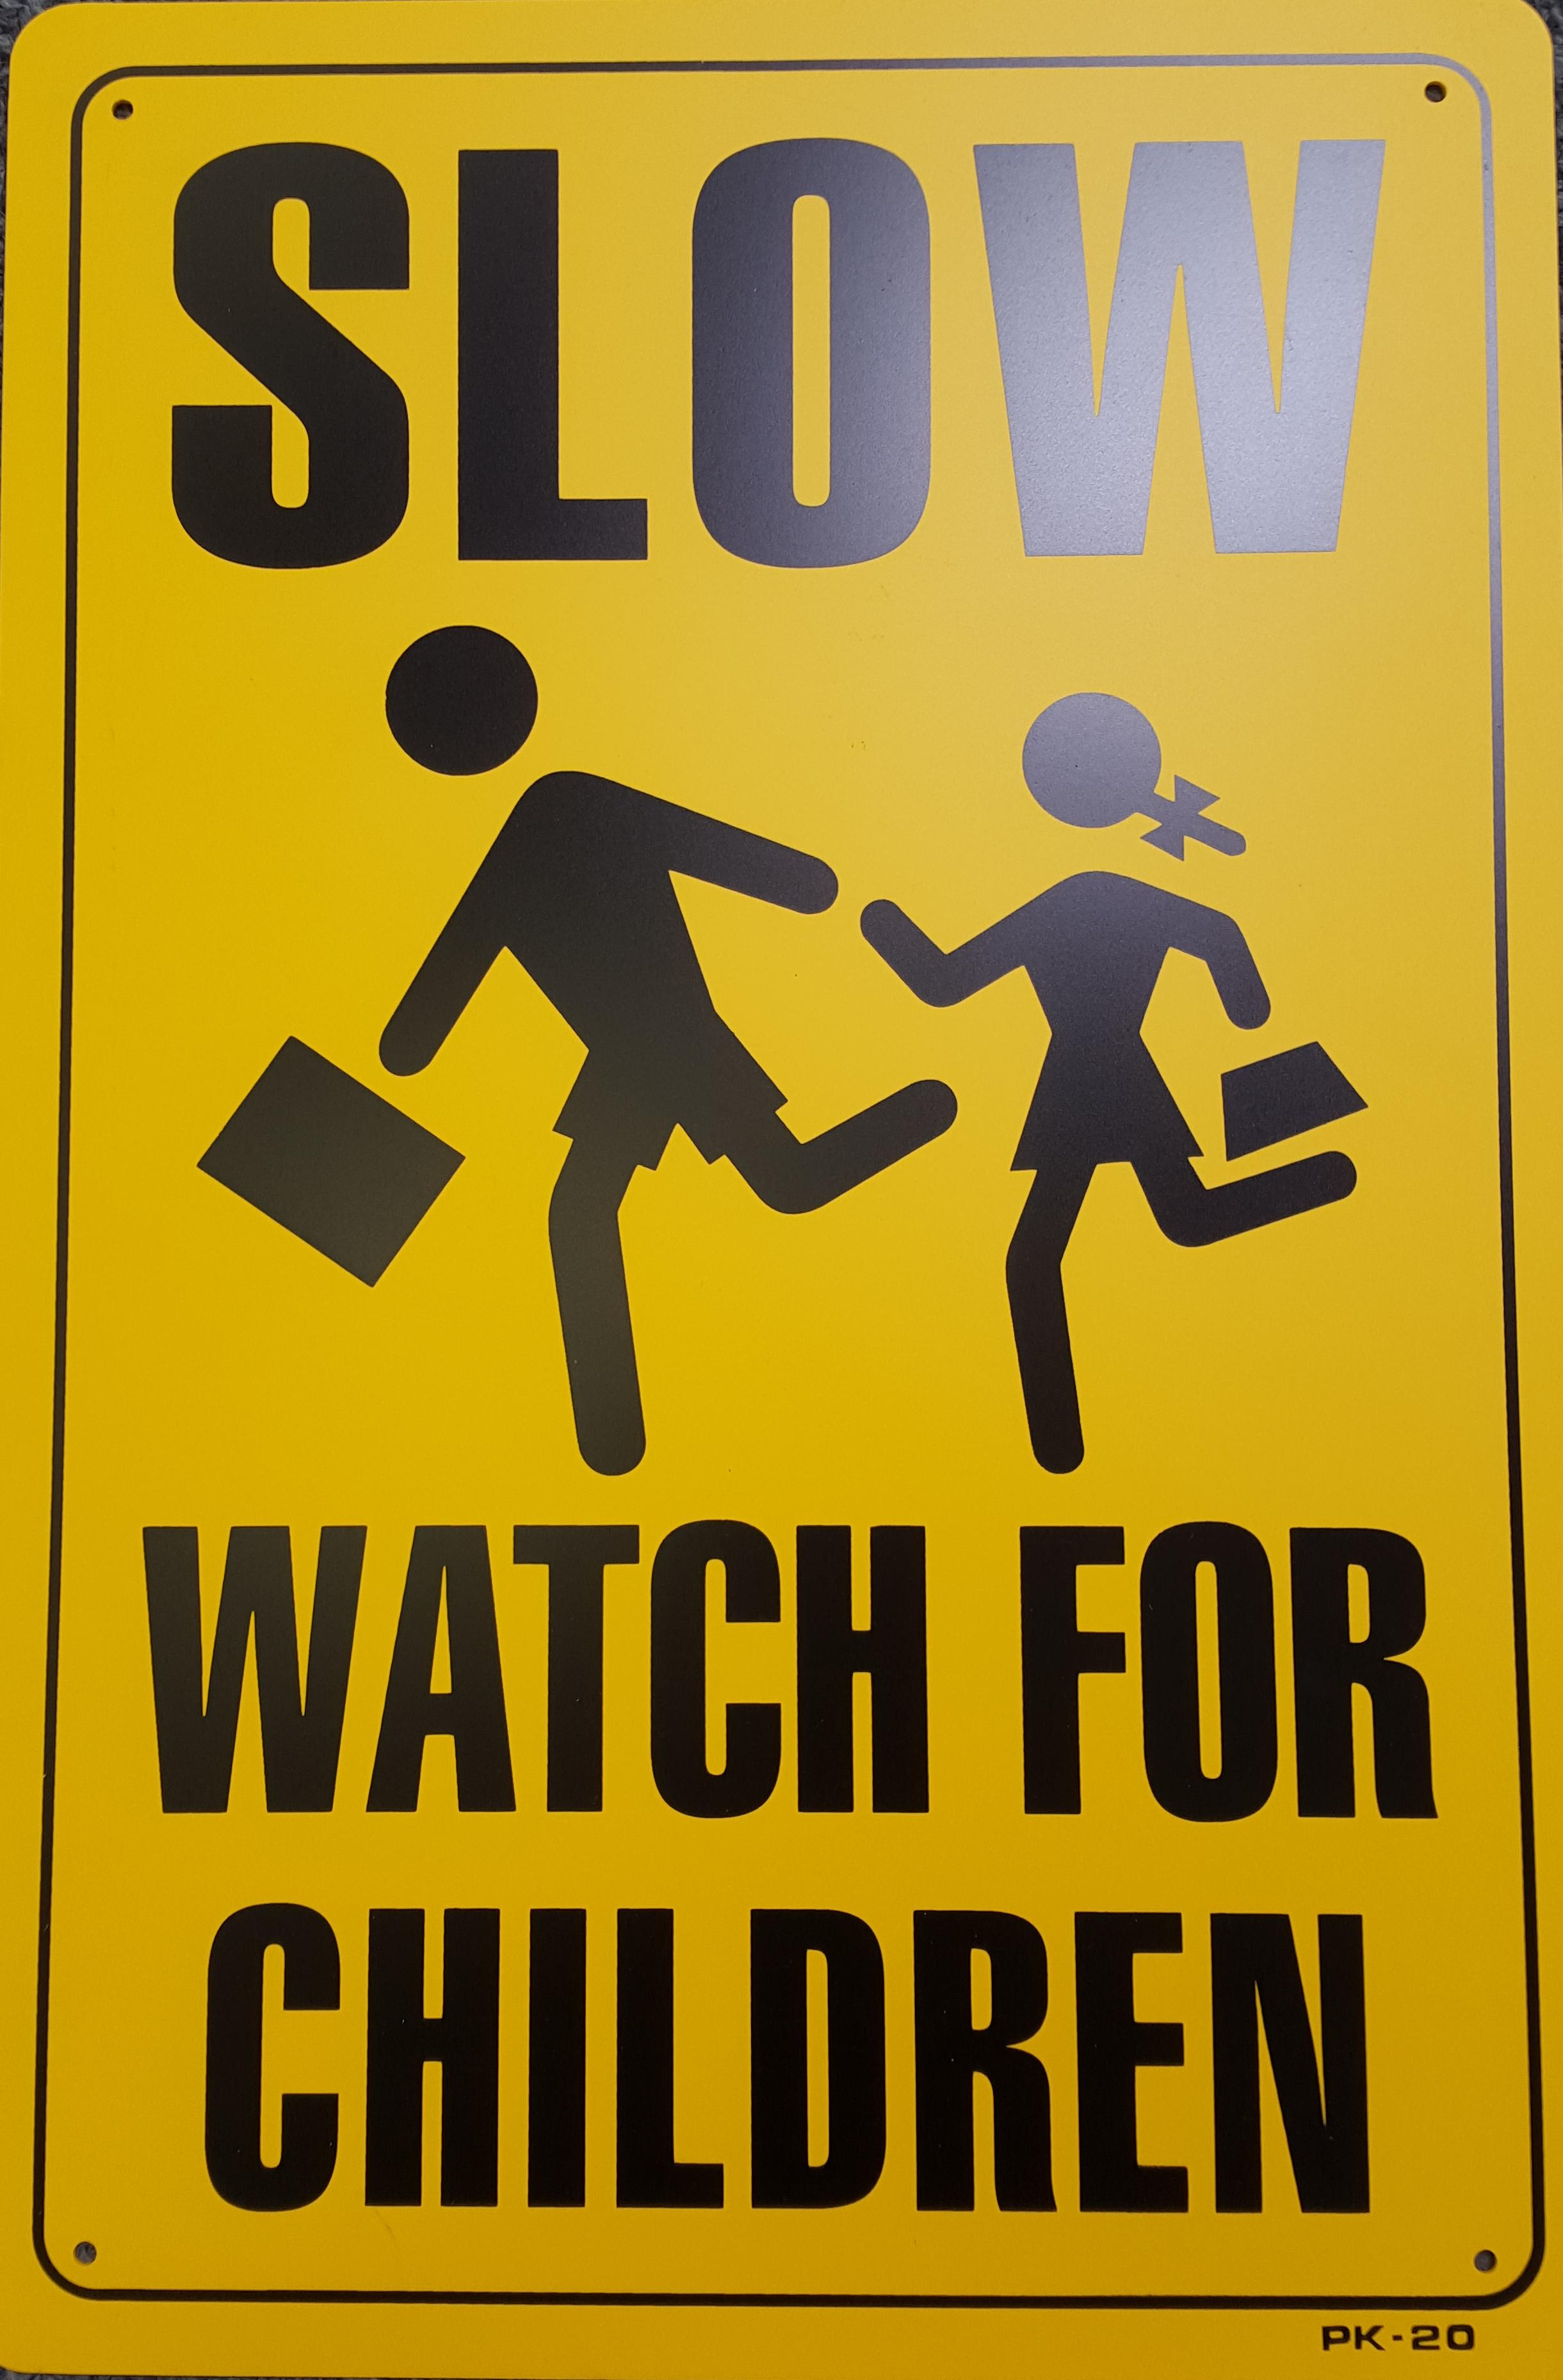 Watch For Children Stock Sign